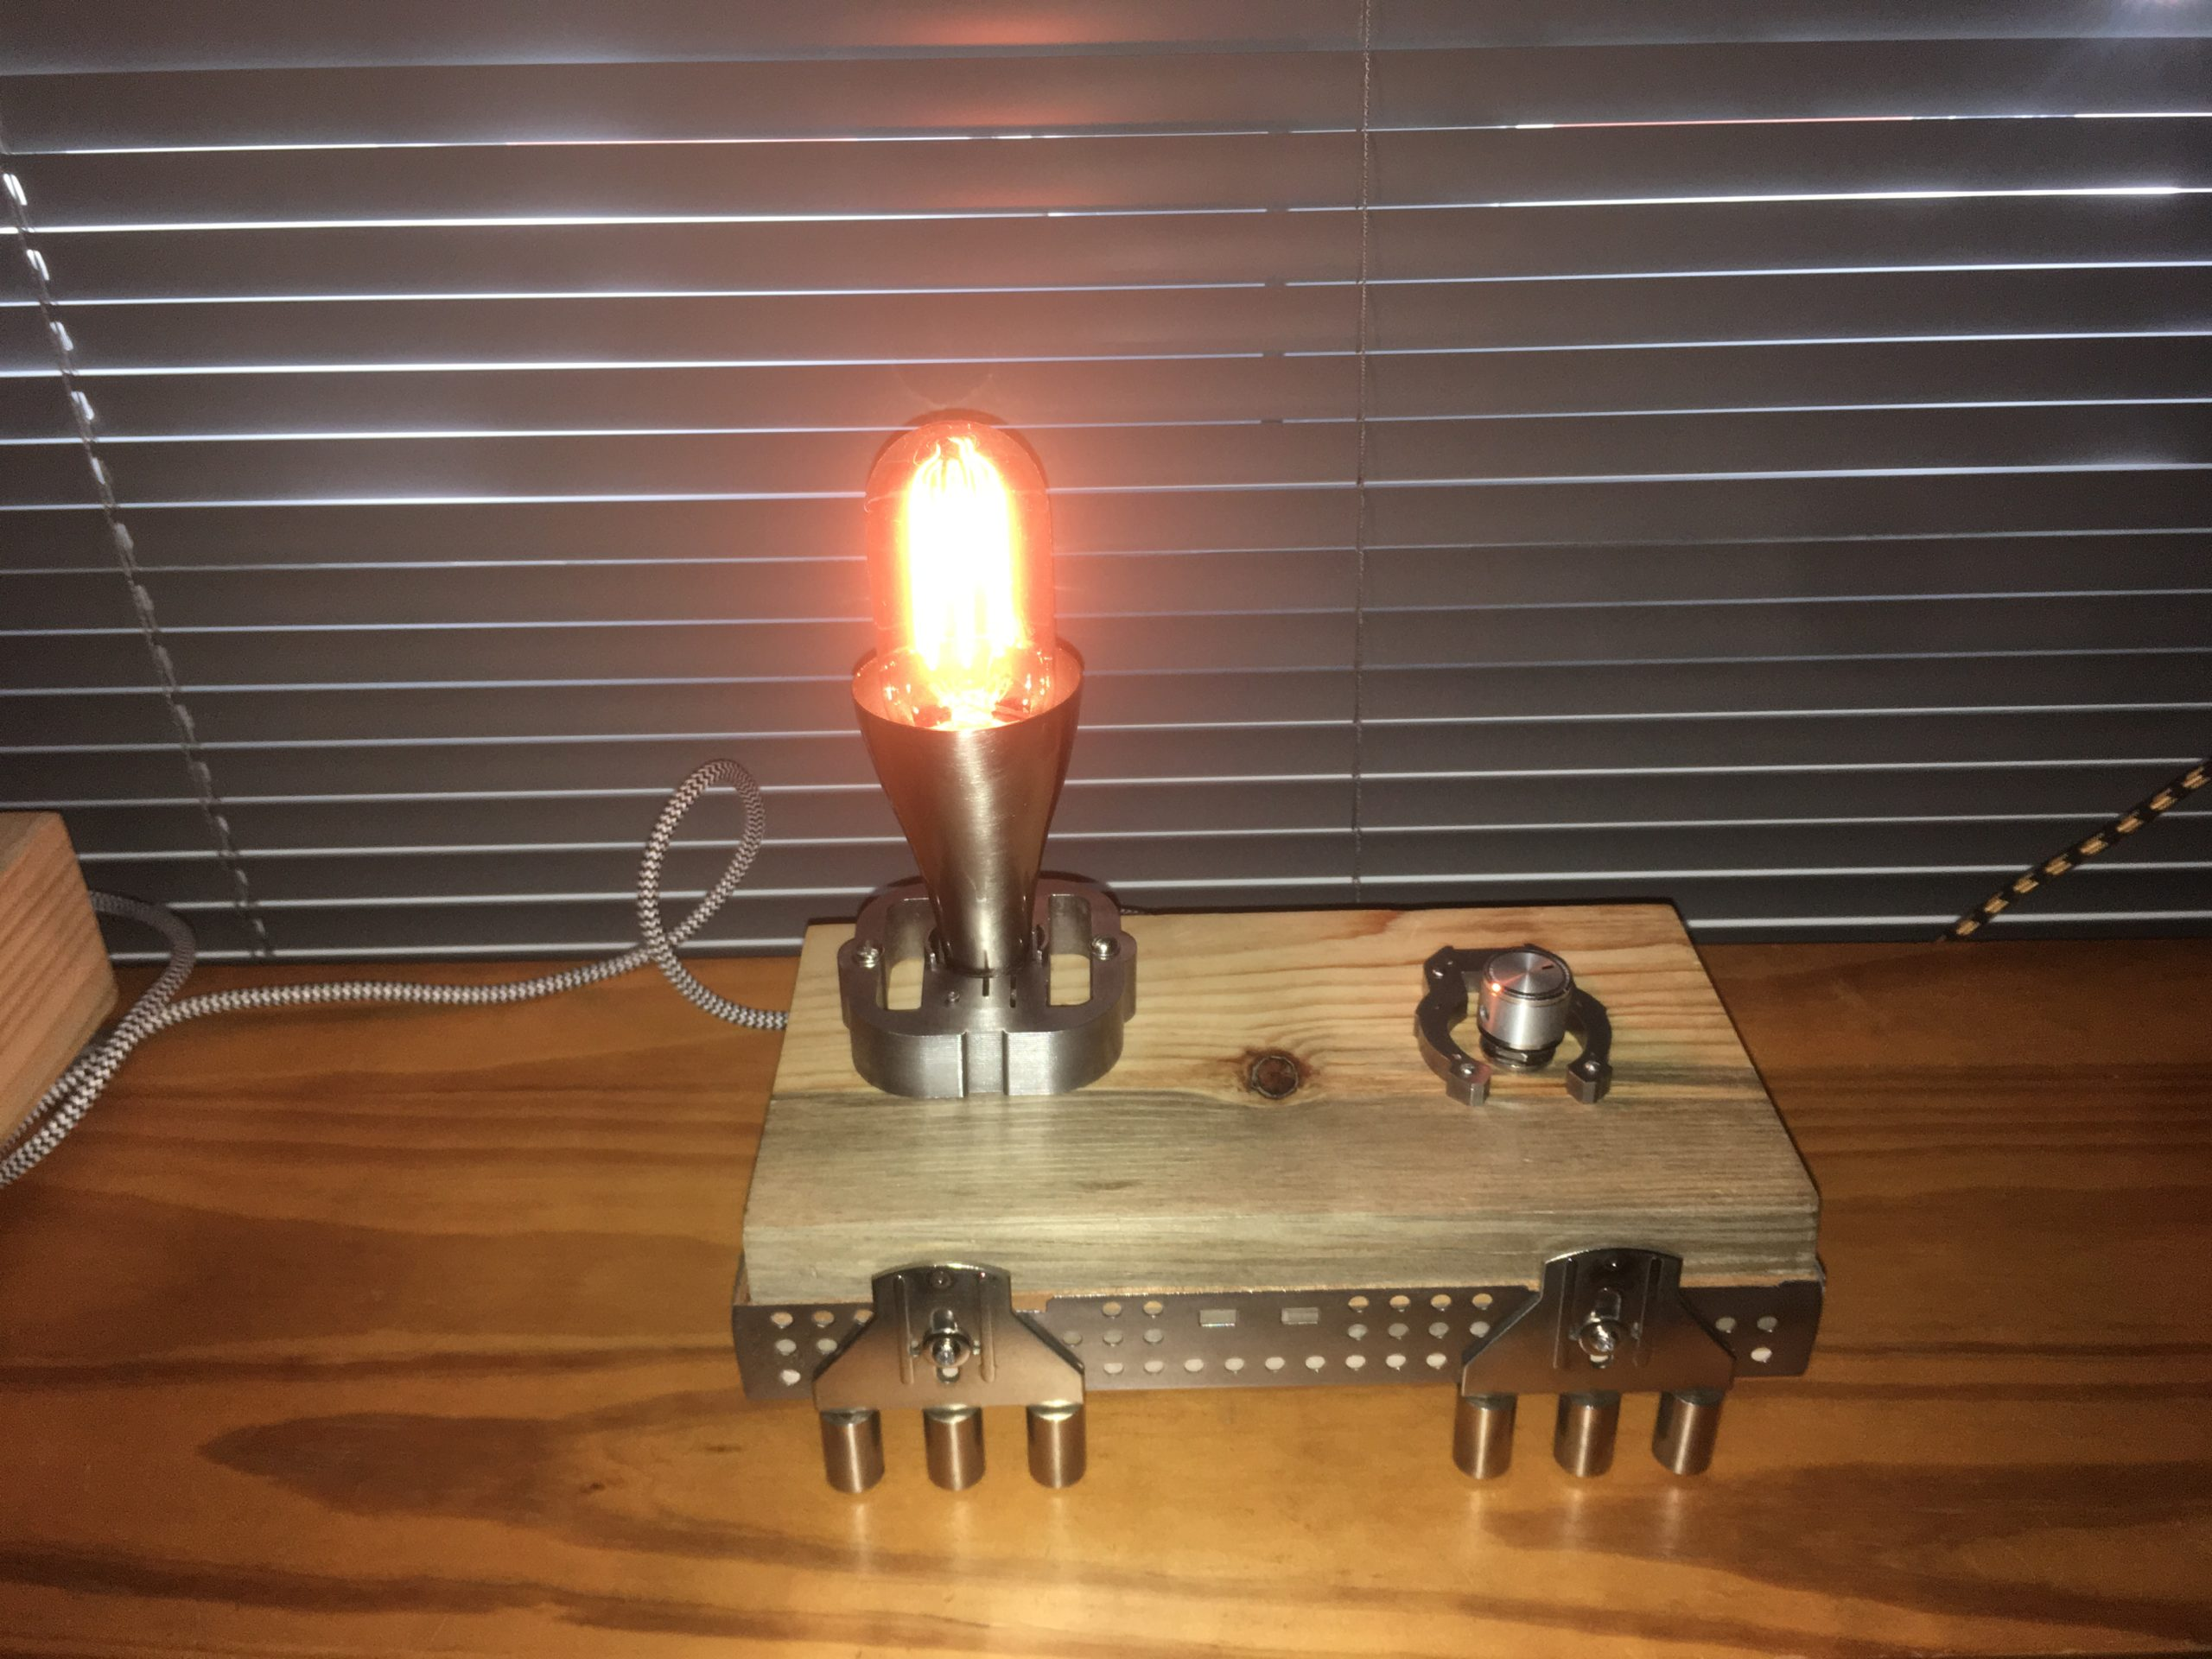 LATCHES LAMP ART BY CHEM